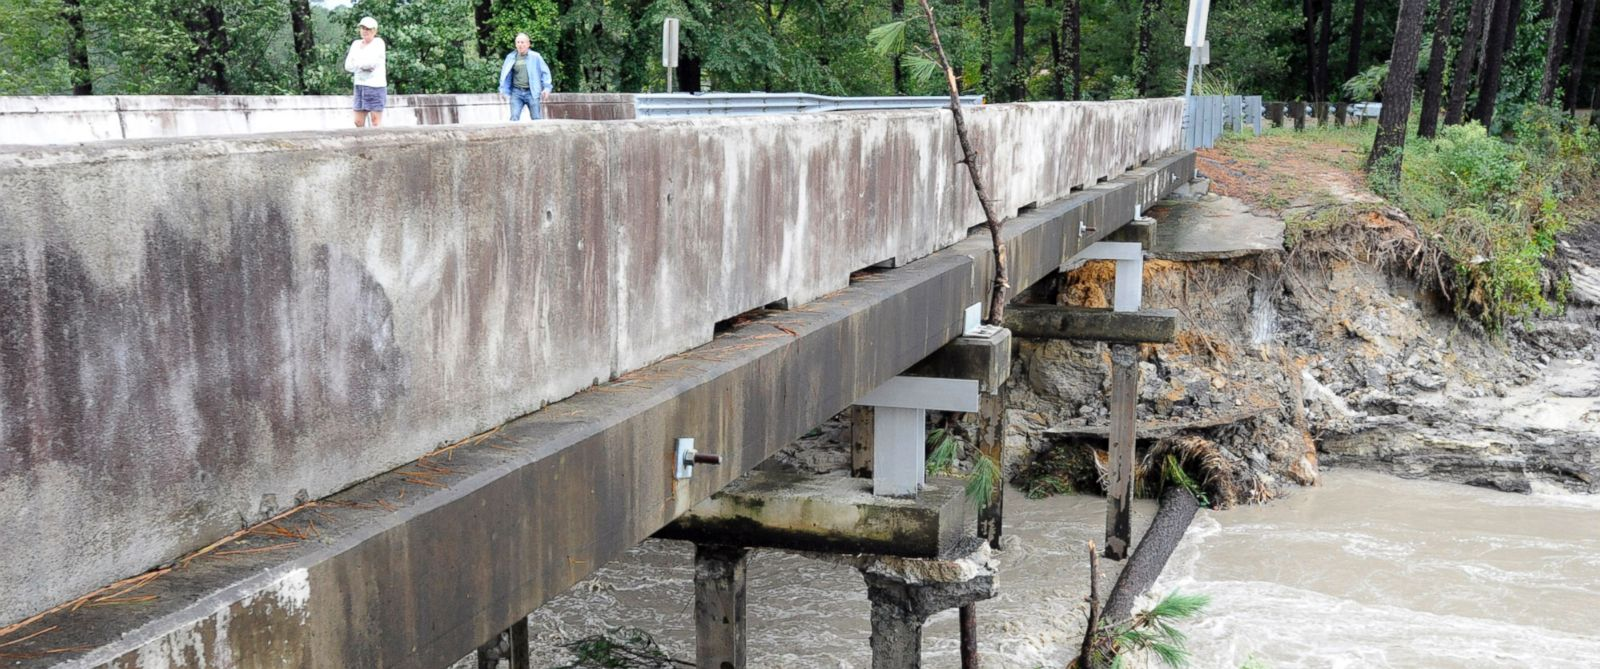 PHOTO: Residents of a lakeside neighborhood walk across Overcreek Bridge by the remains of a failed dam in Columbia, S.C., Oct. 5, 2015.